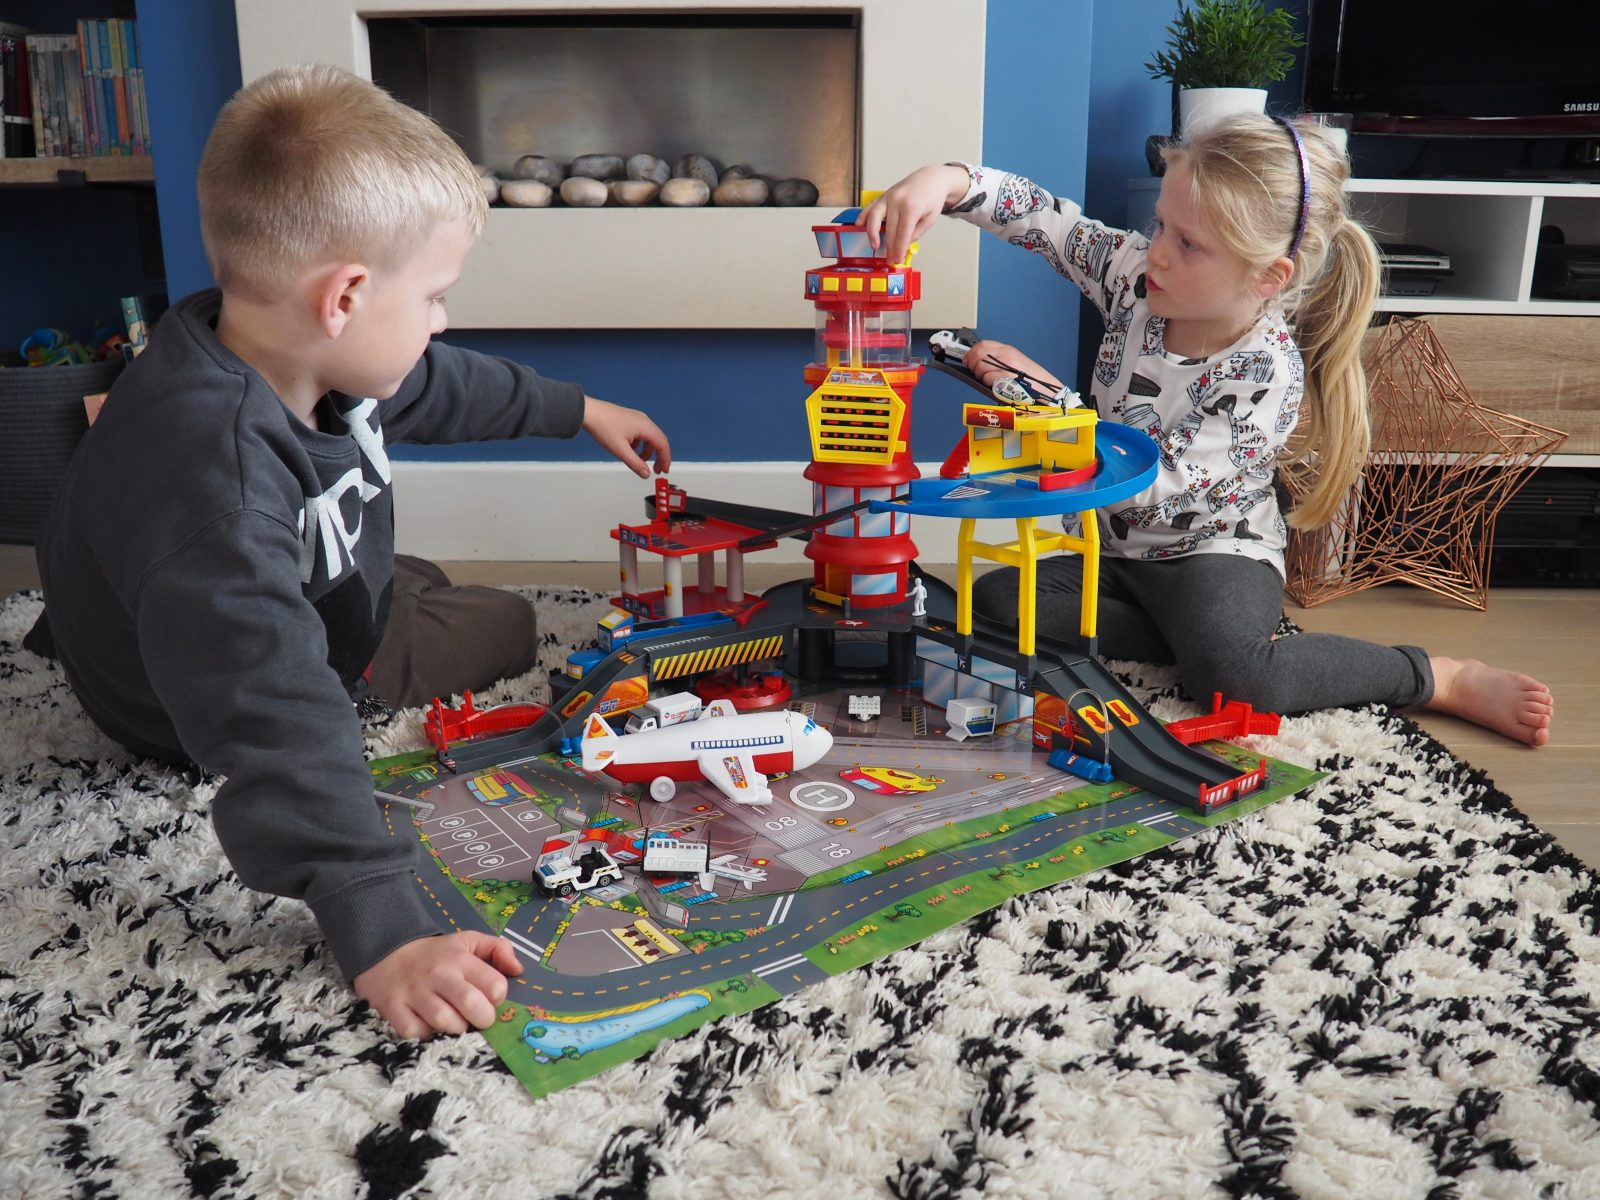 Chad Valley Play Panel – Chad Valley Airport Playset Review | Win a £75 Argos Gift Card